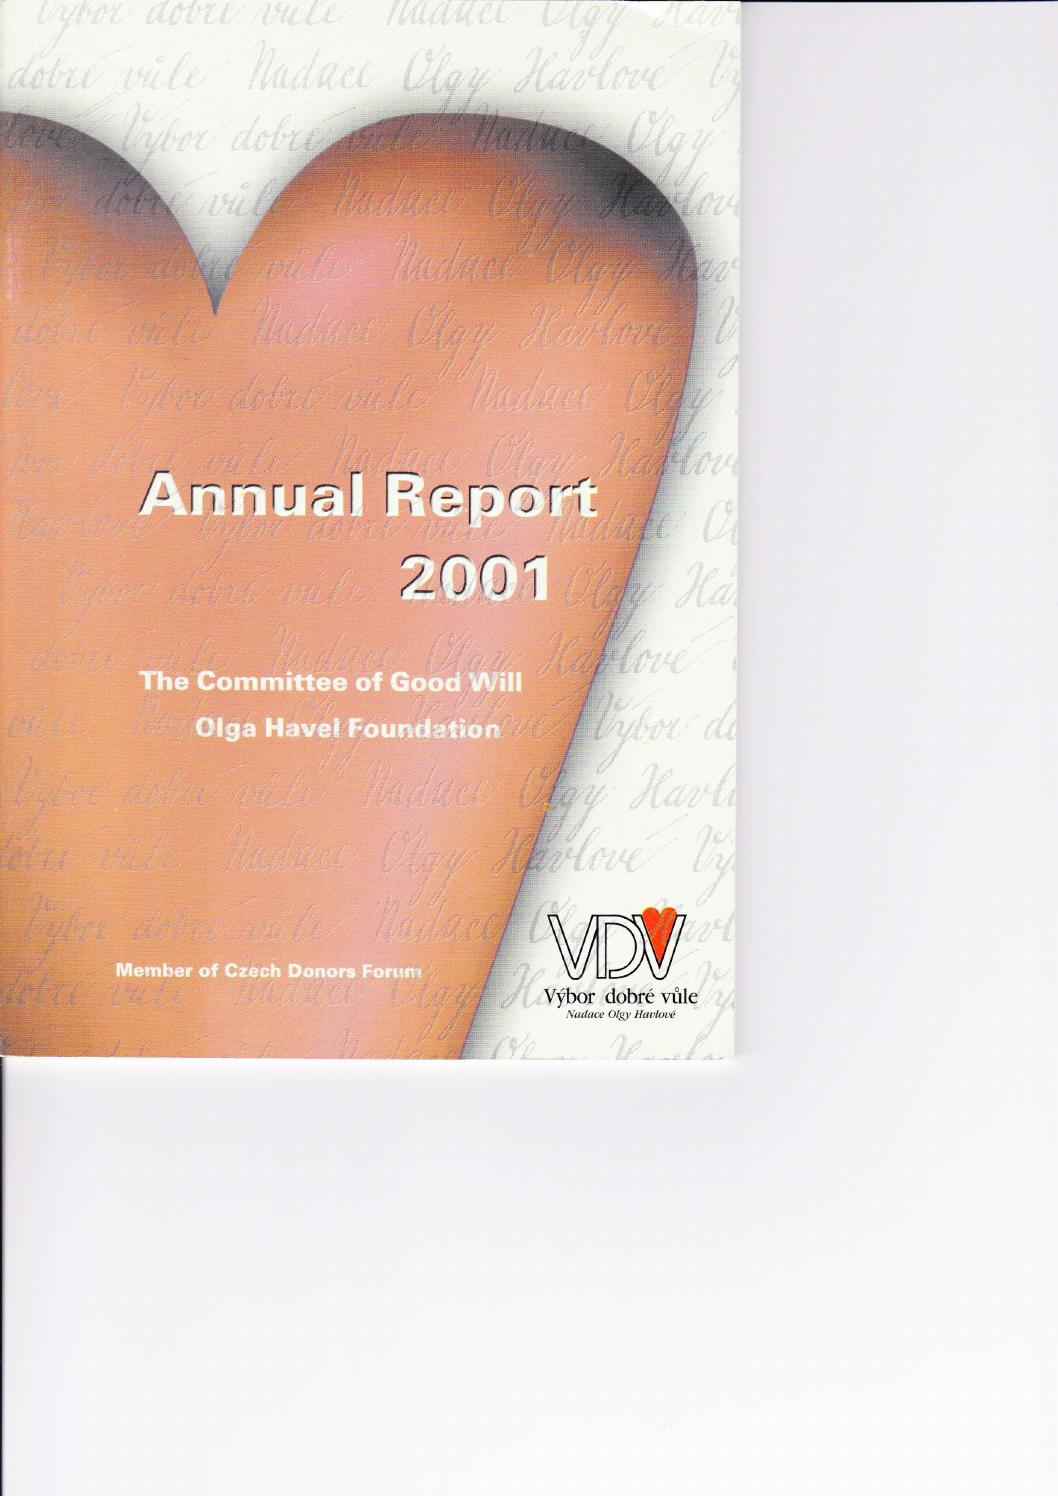 Annual Report of the Olga Havel Foundation